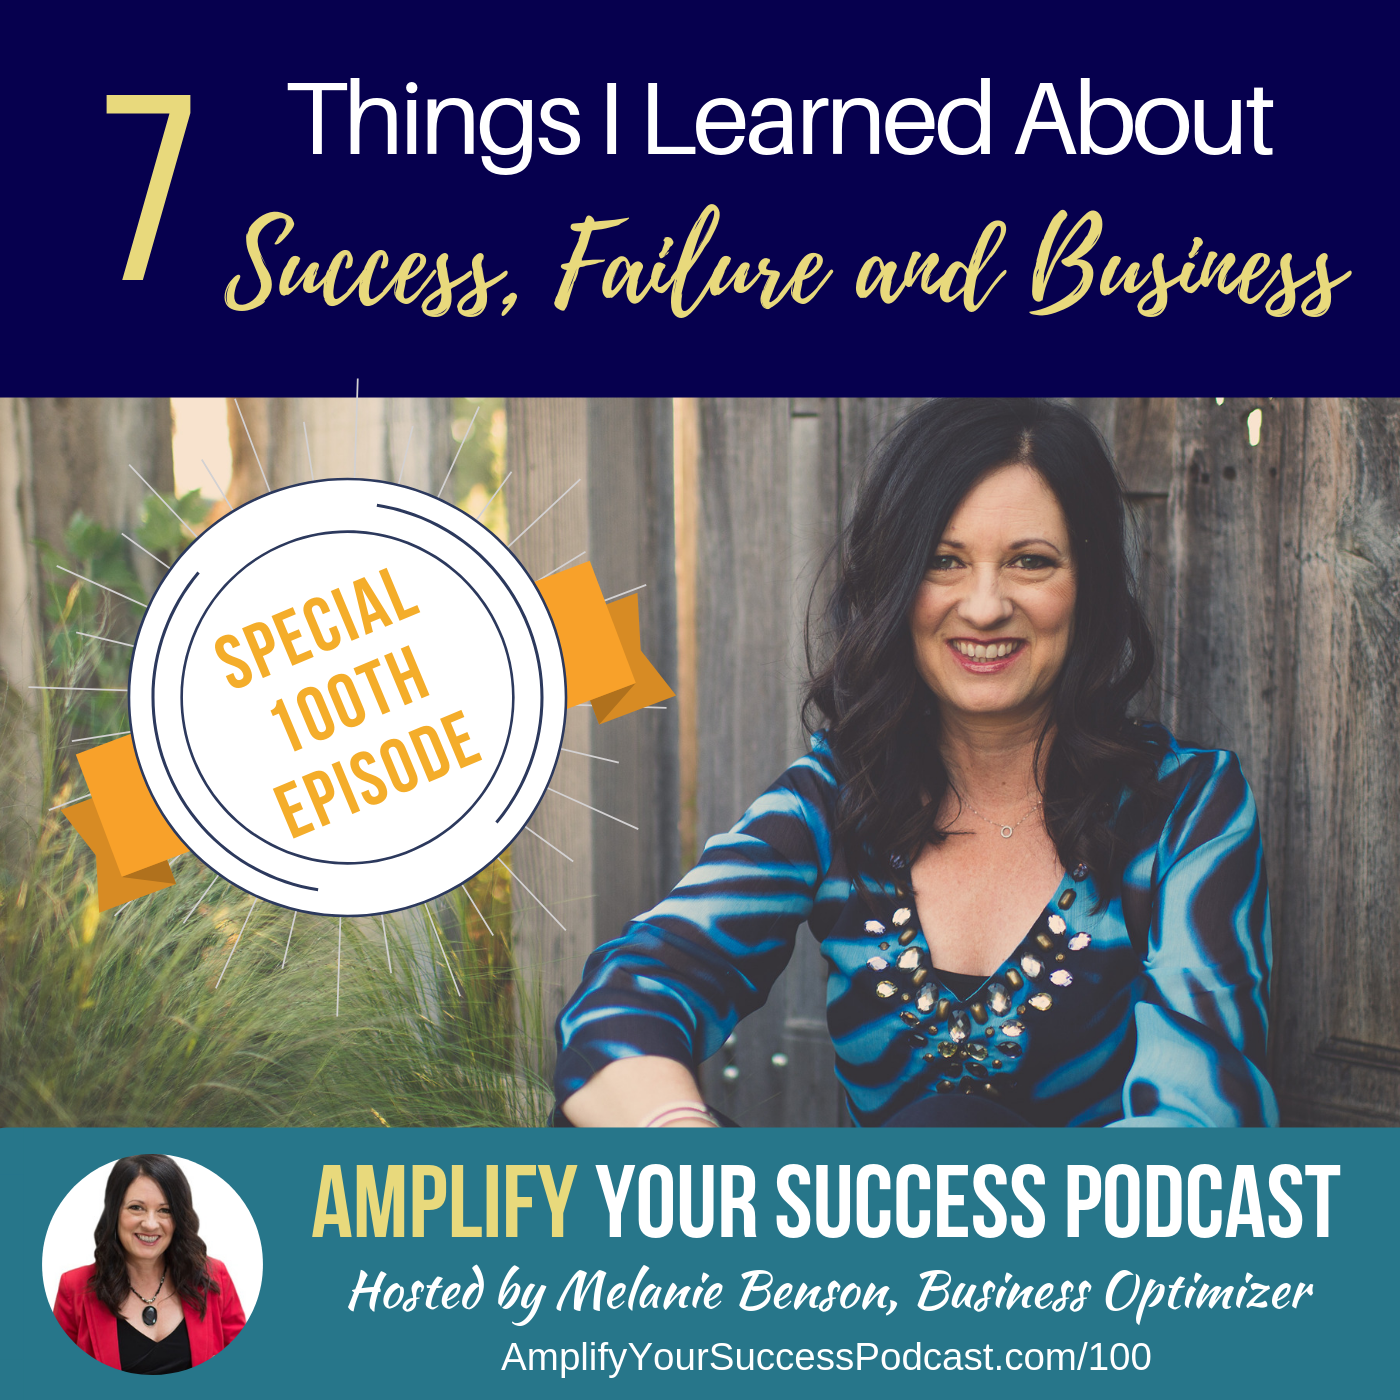 7 Things I Learned About Success, Failure and Business 1